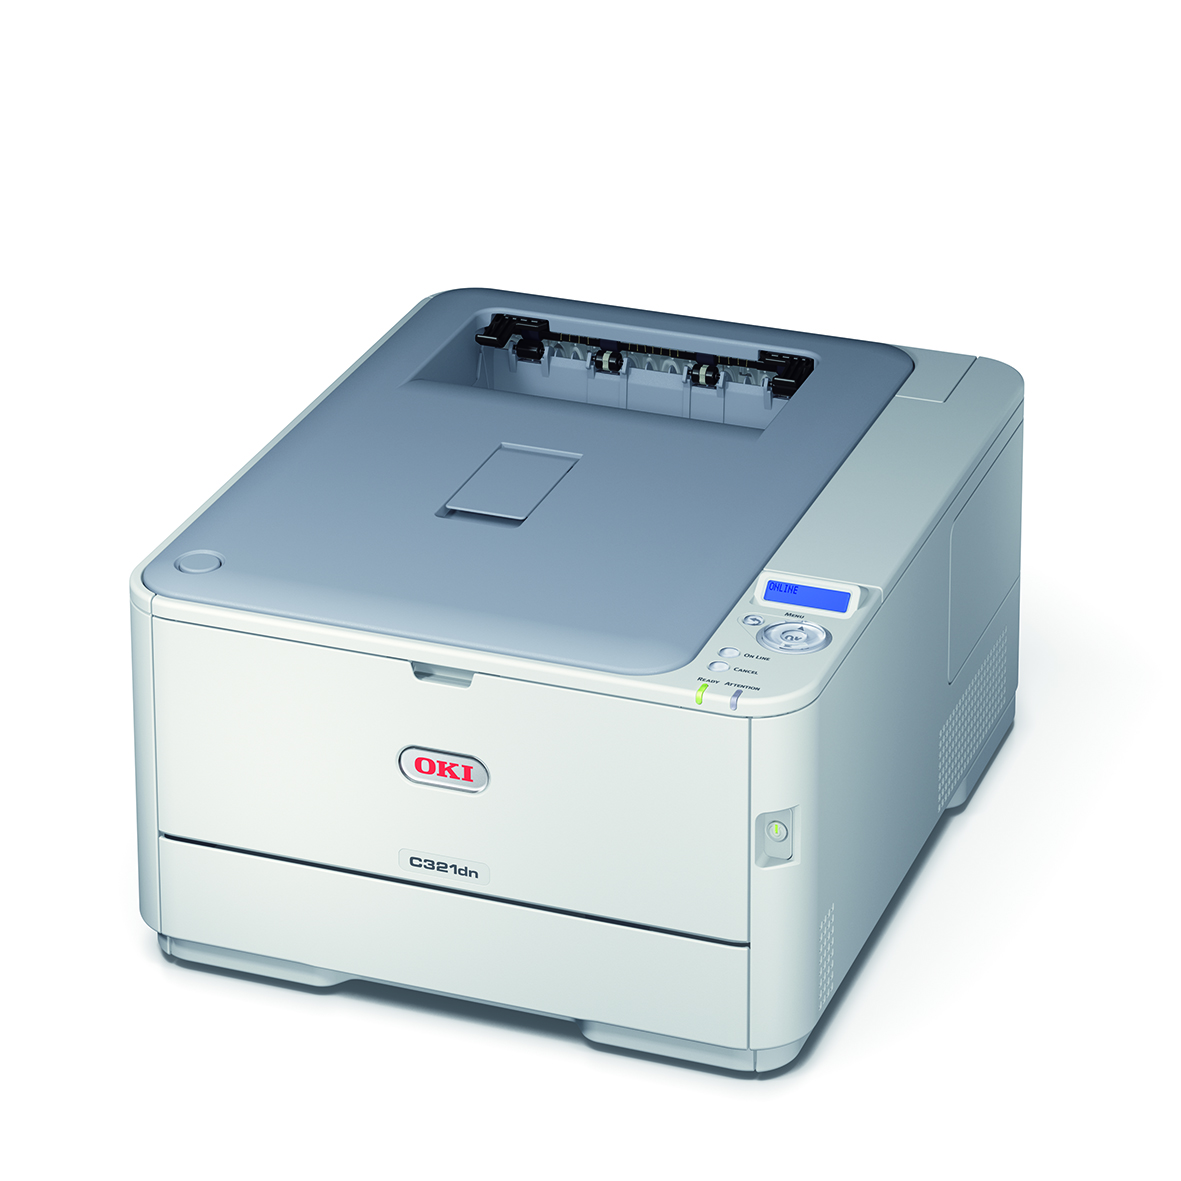 OKI-C321dn-Duplex-Network-A4-Colour-Laser-Printer